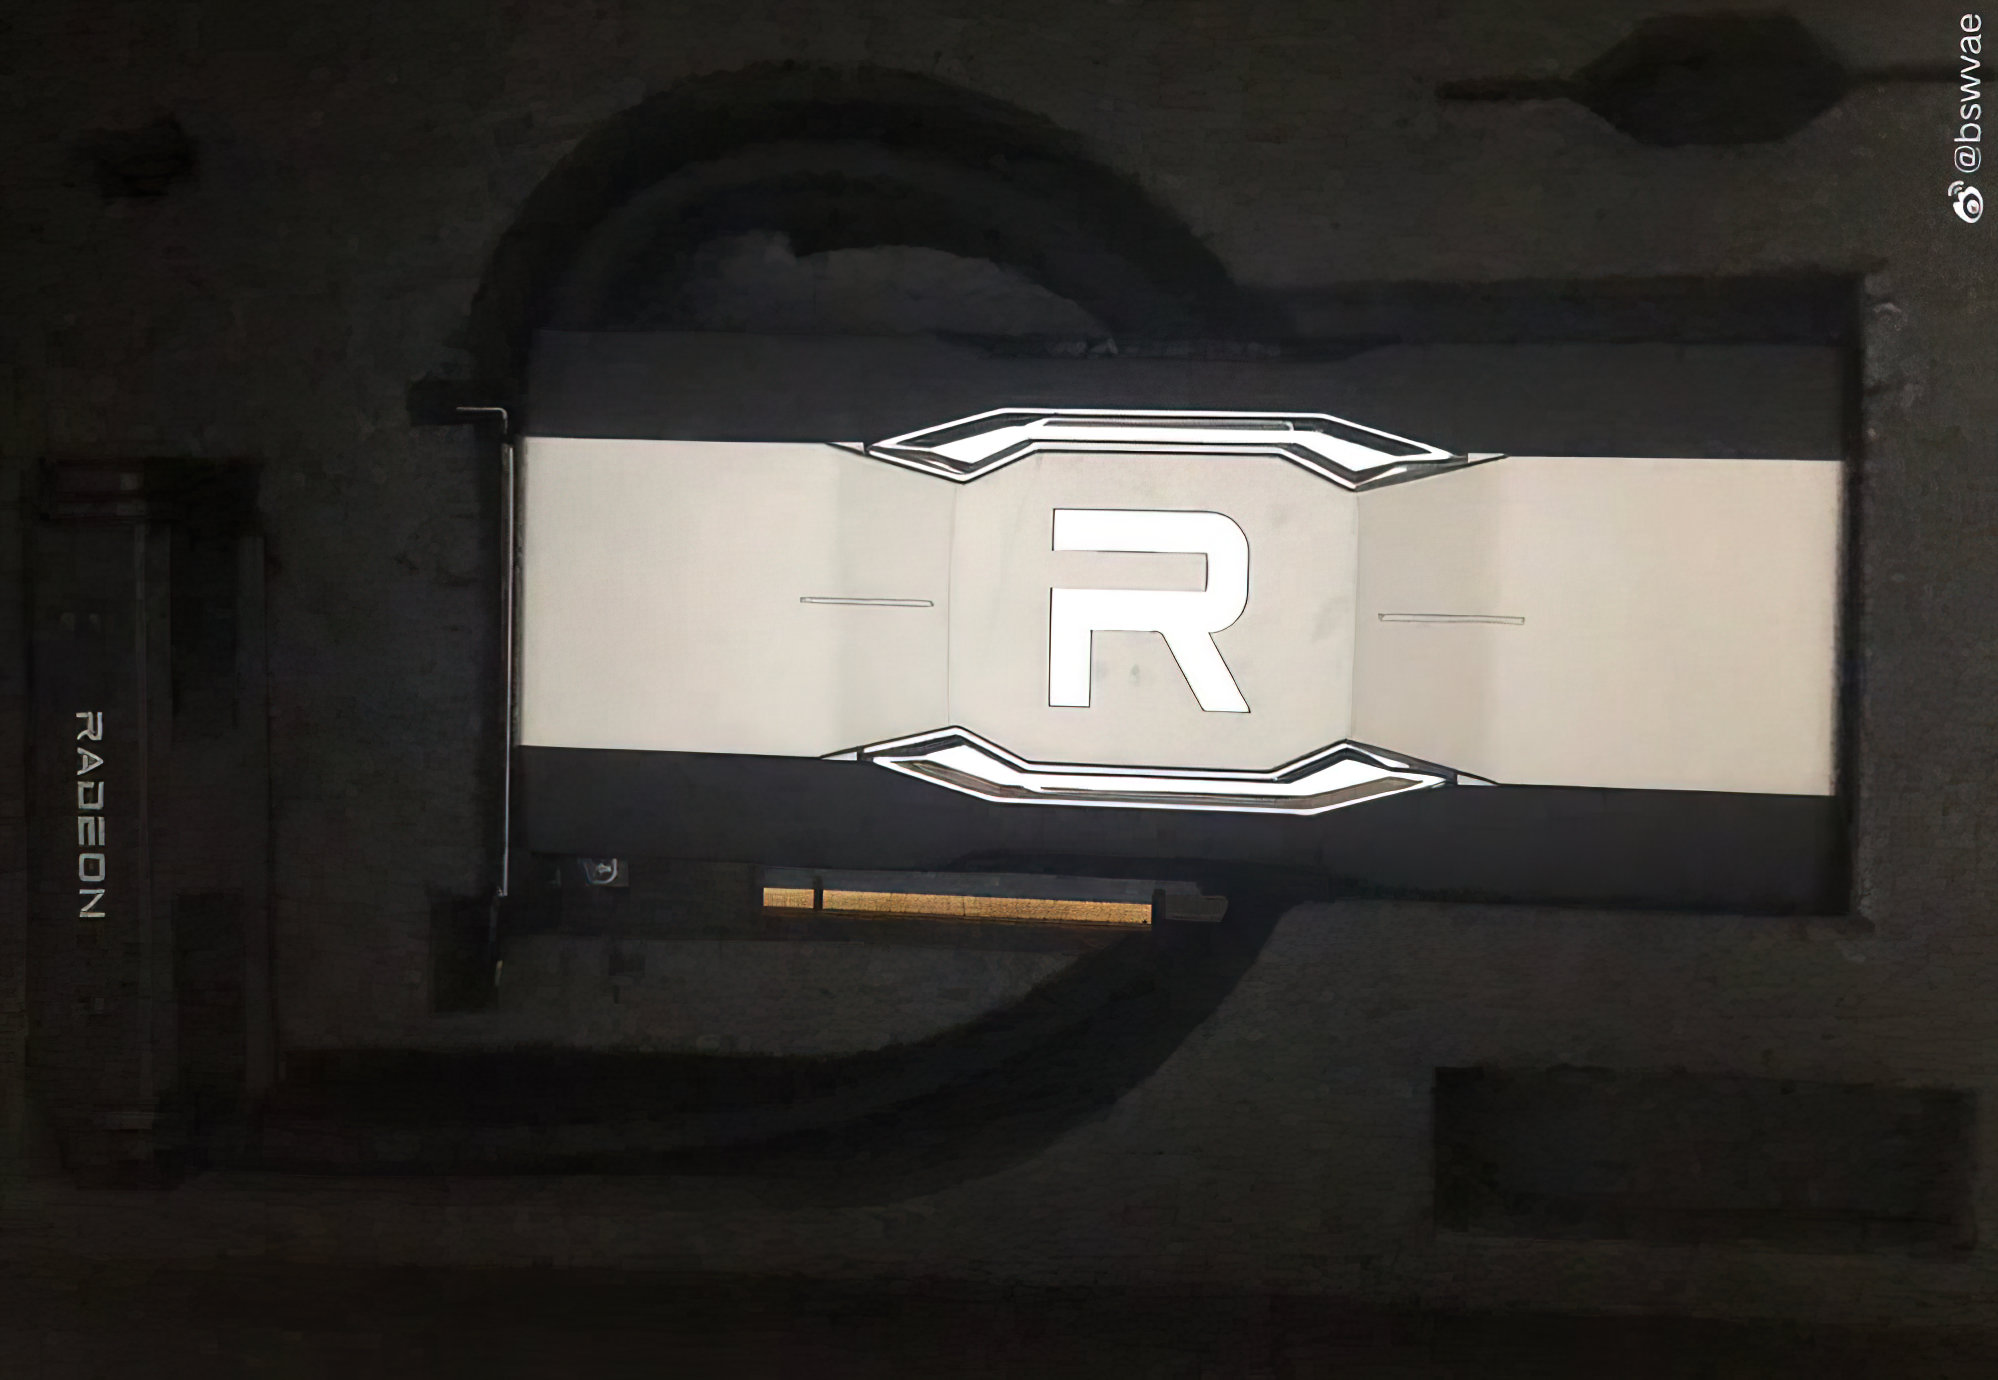 Unreleased AMD Radeon RX 6900 XTX with water cooling allegedly pictured – VideoCardz.com